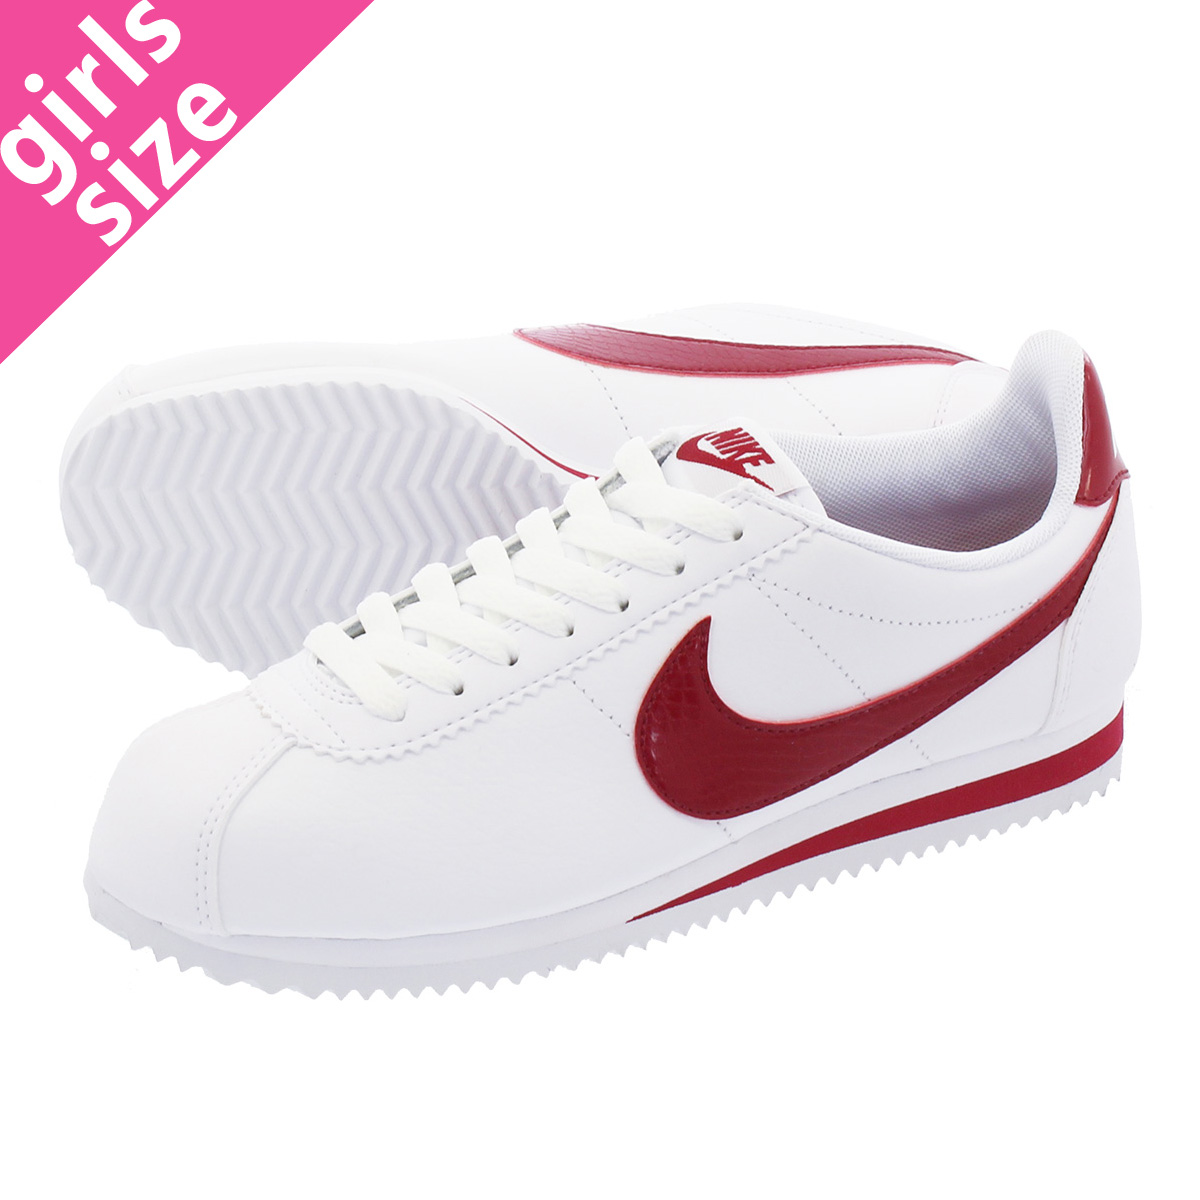 new arrival 15b3d b209c NIKE WMNS CLASSIC CORTEZ LEATHER ナイキウィメンズクラシックコルテッツレザー WHITE/RED CRUSH  807,471-108